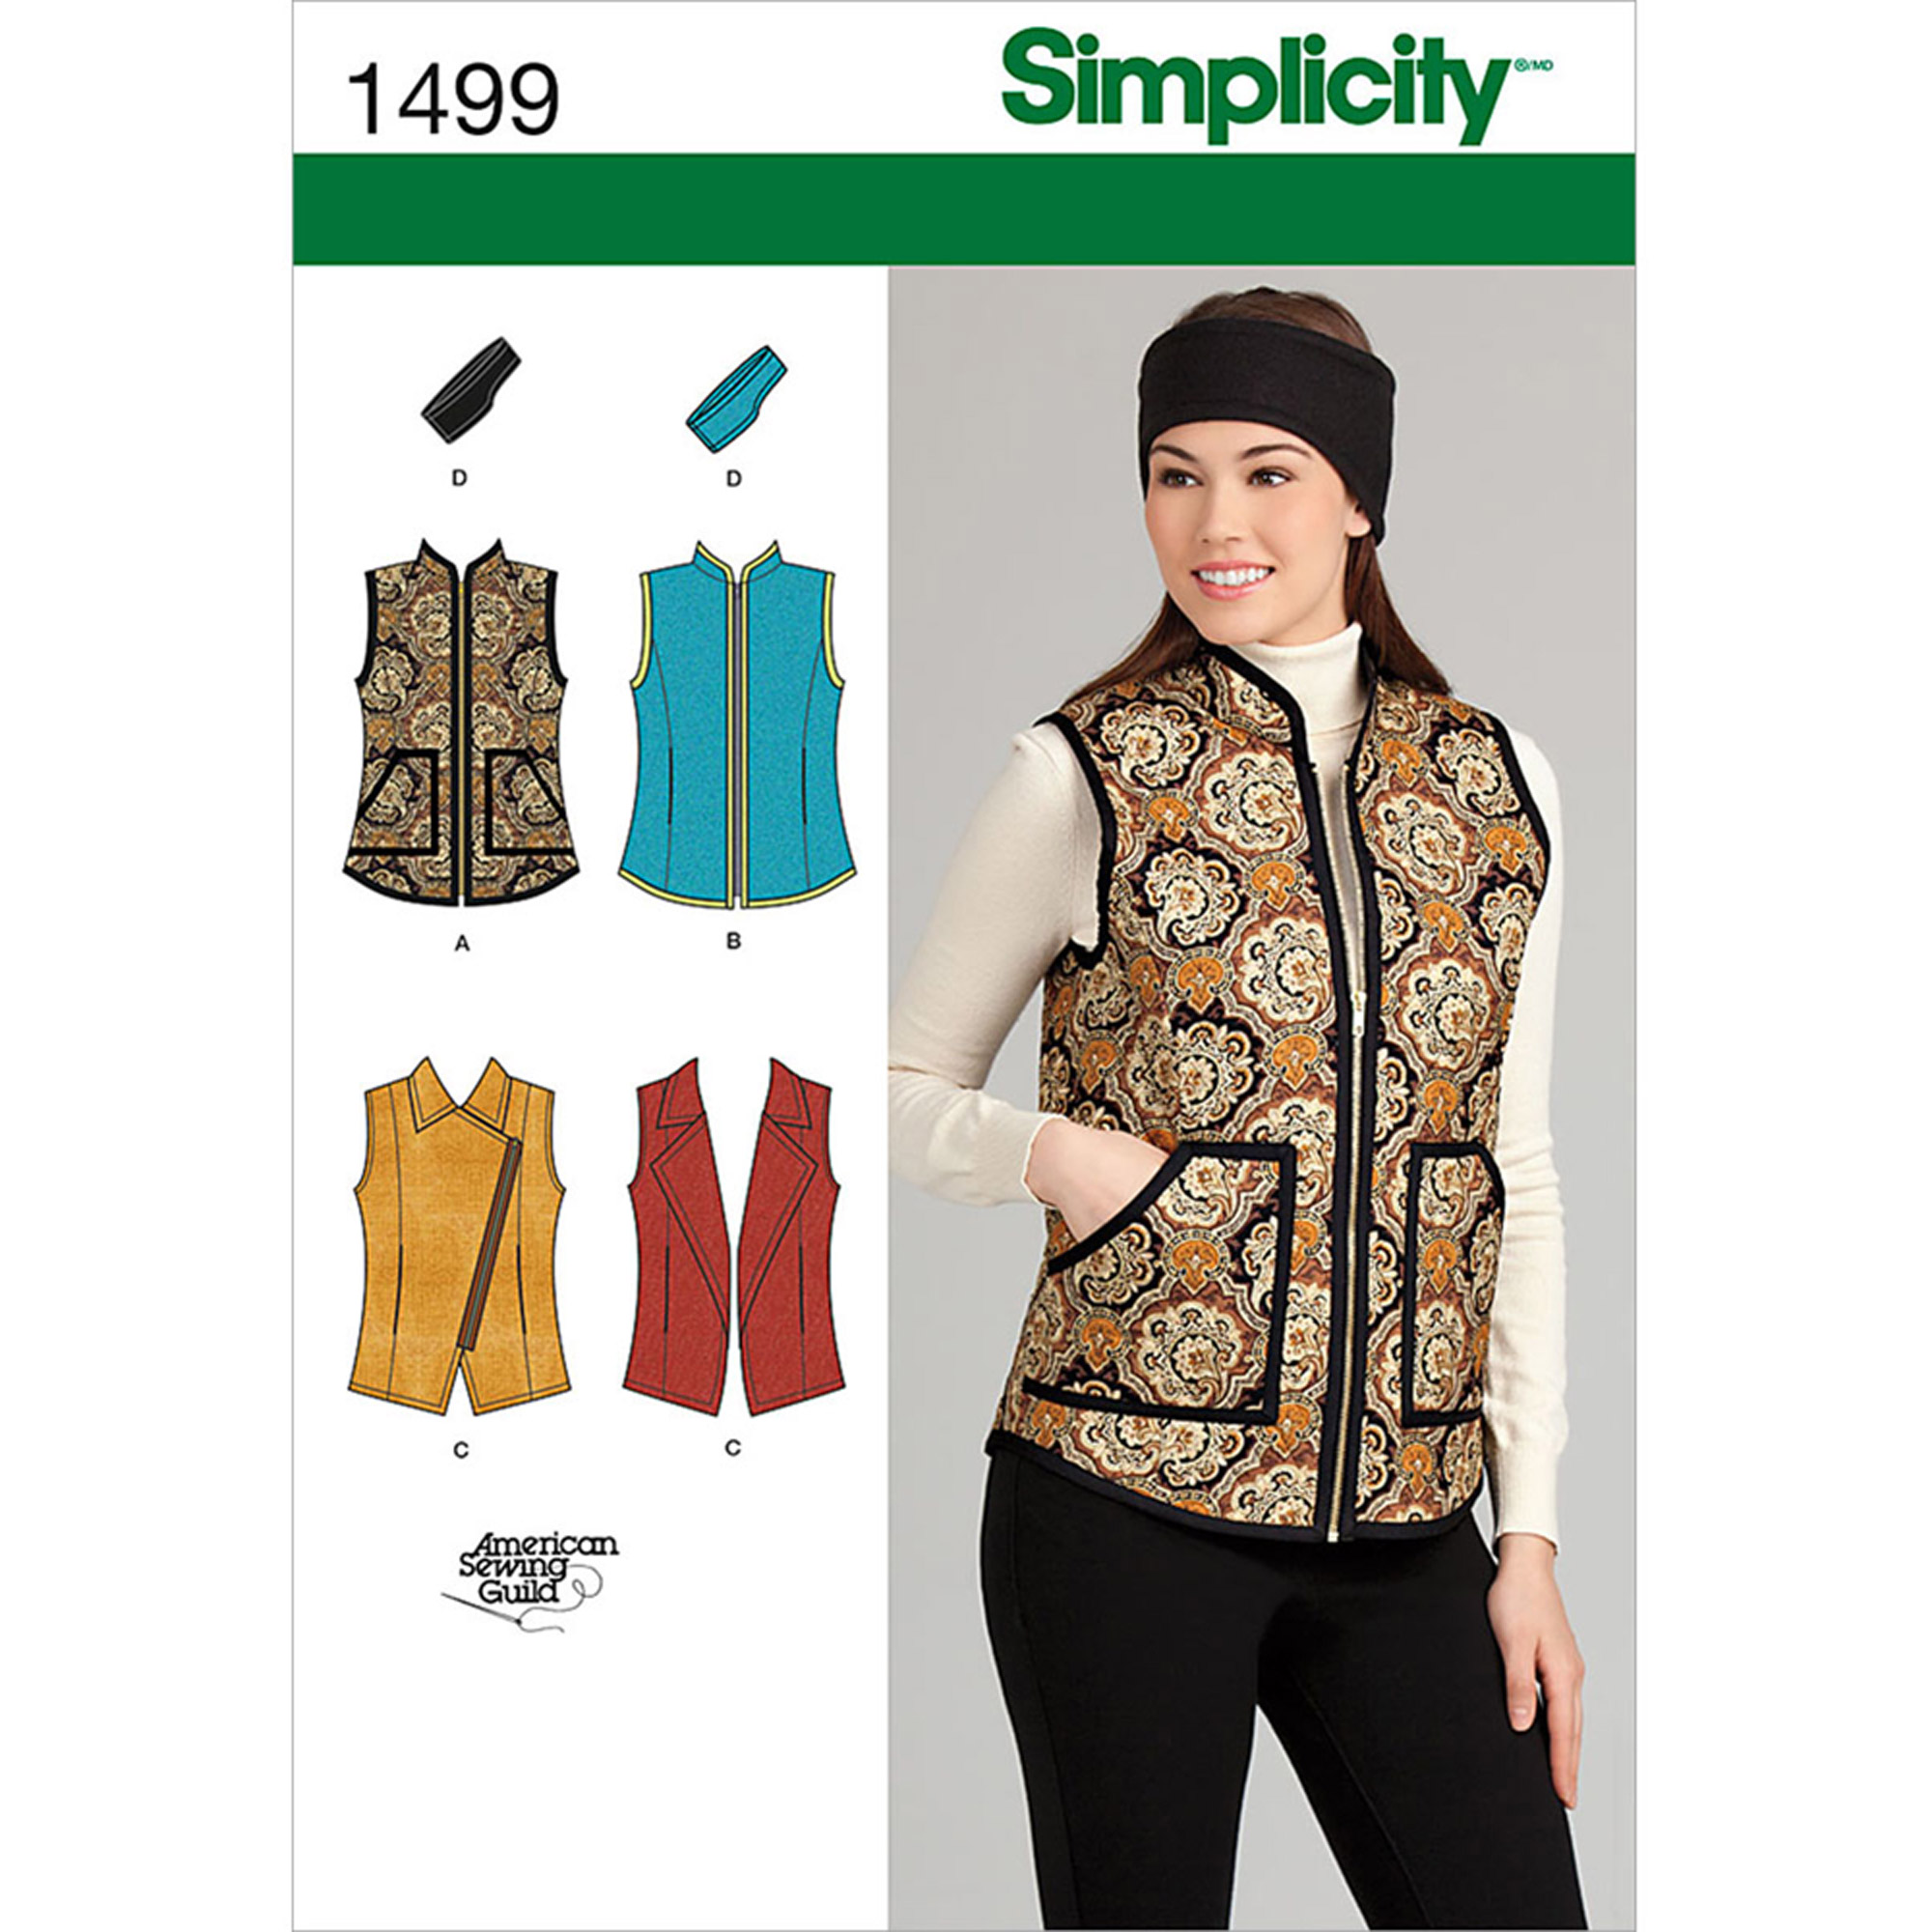 Simplicity Patterns Misses Jackets Coats, 6, 8, 10, 12, 14 On Sale ...